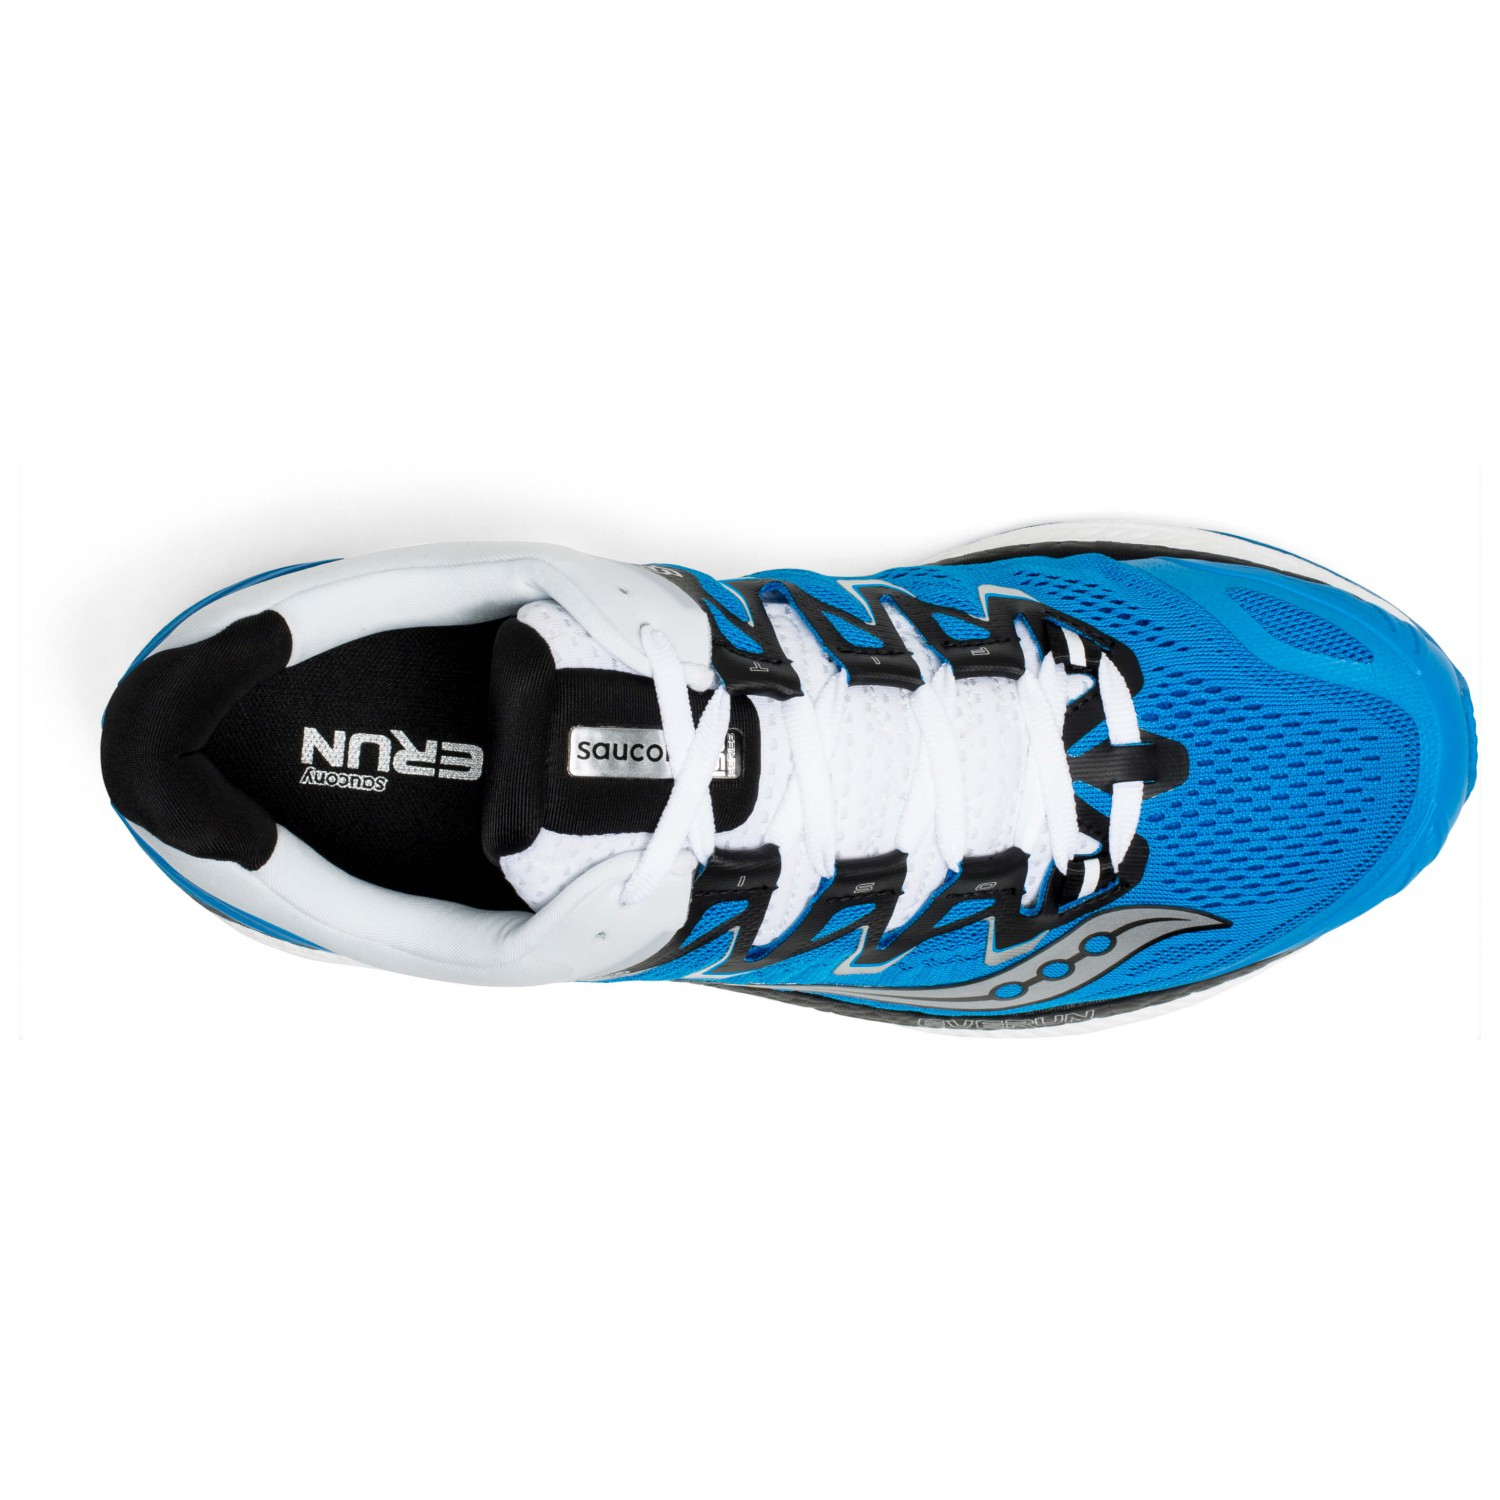 5f0cbfd529a2 ... Saucony - Triumph Iso 4 - Running shoes ...